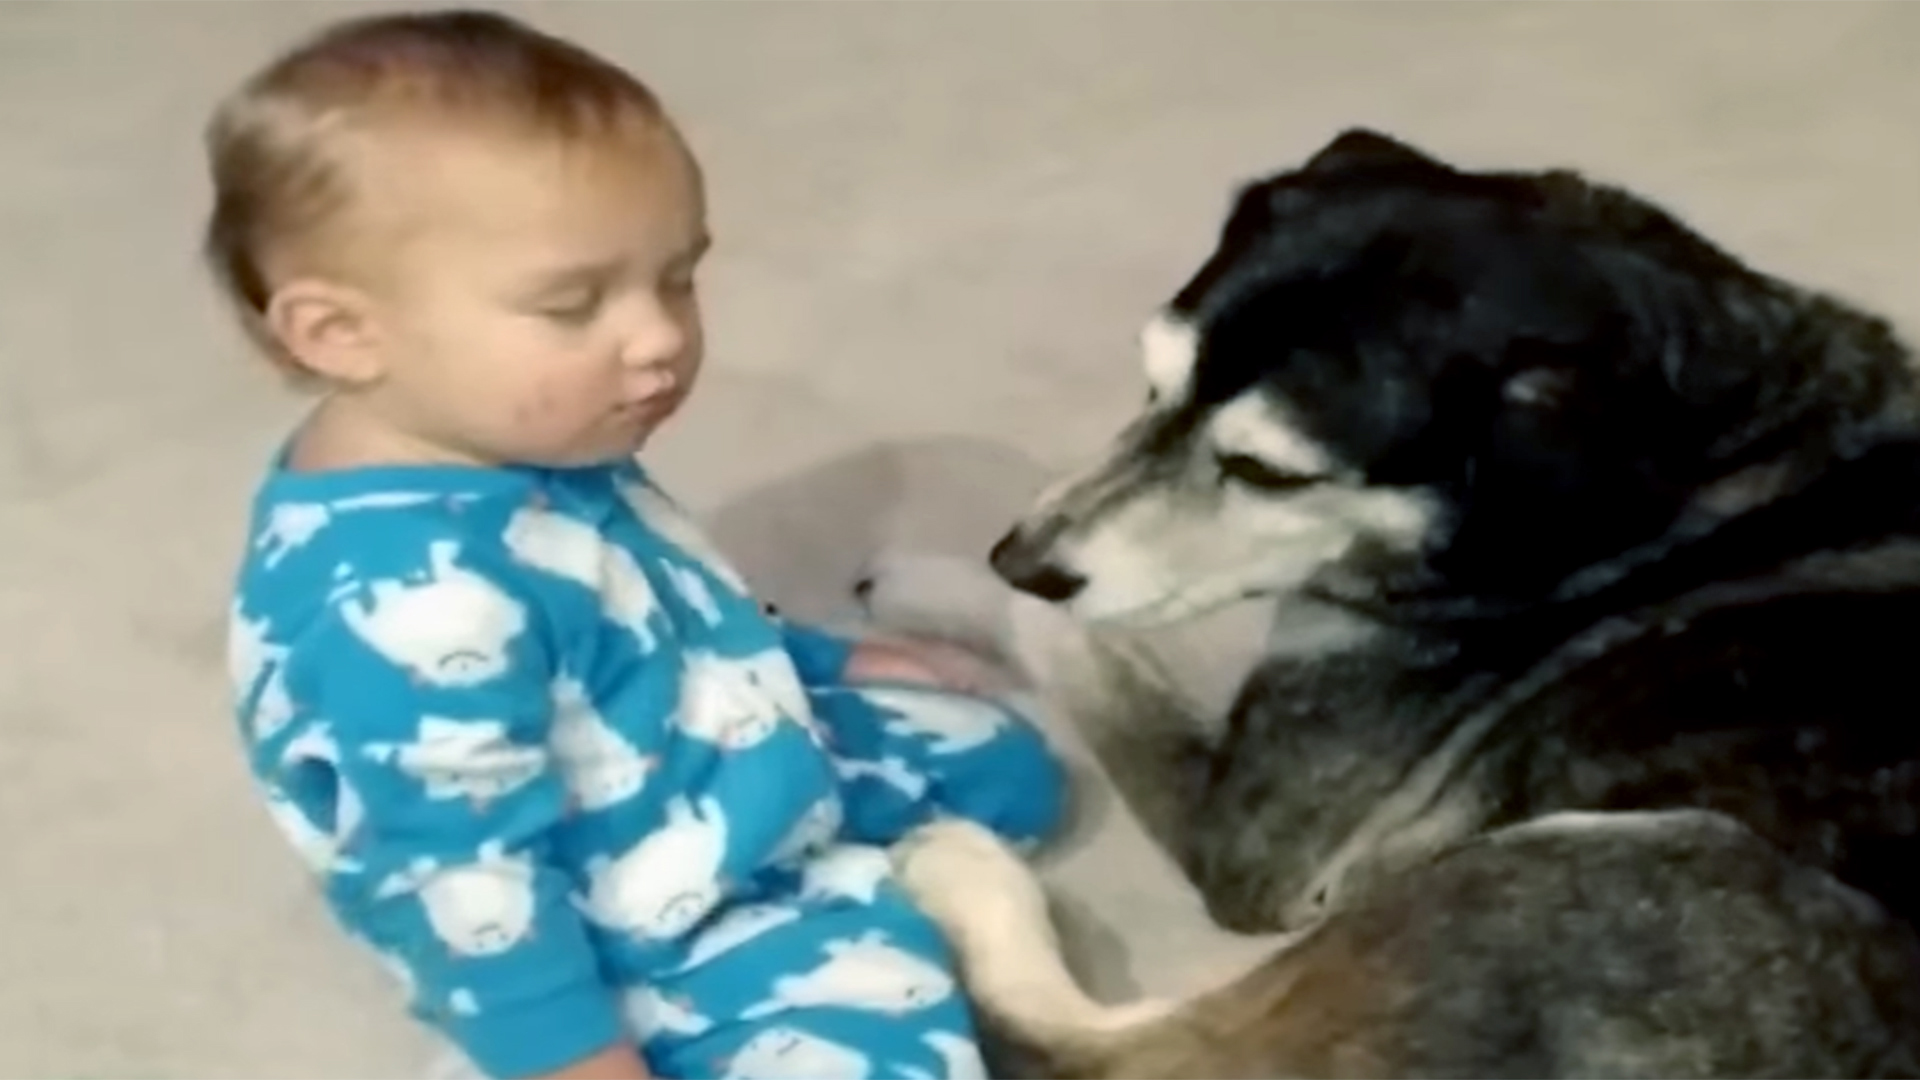 Sleepy baby gets the perfect cuddle buddy watch the adorable video